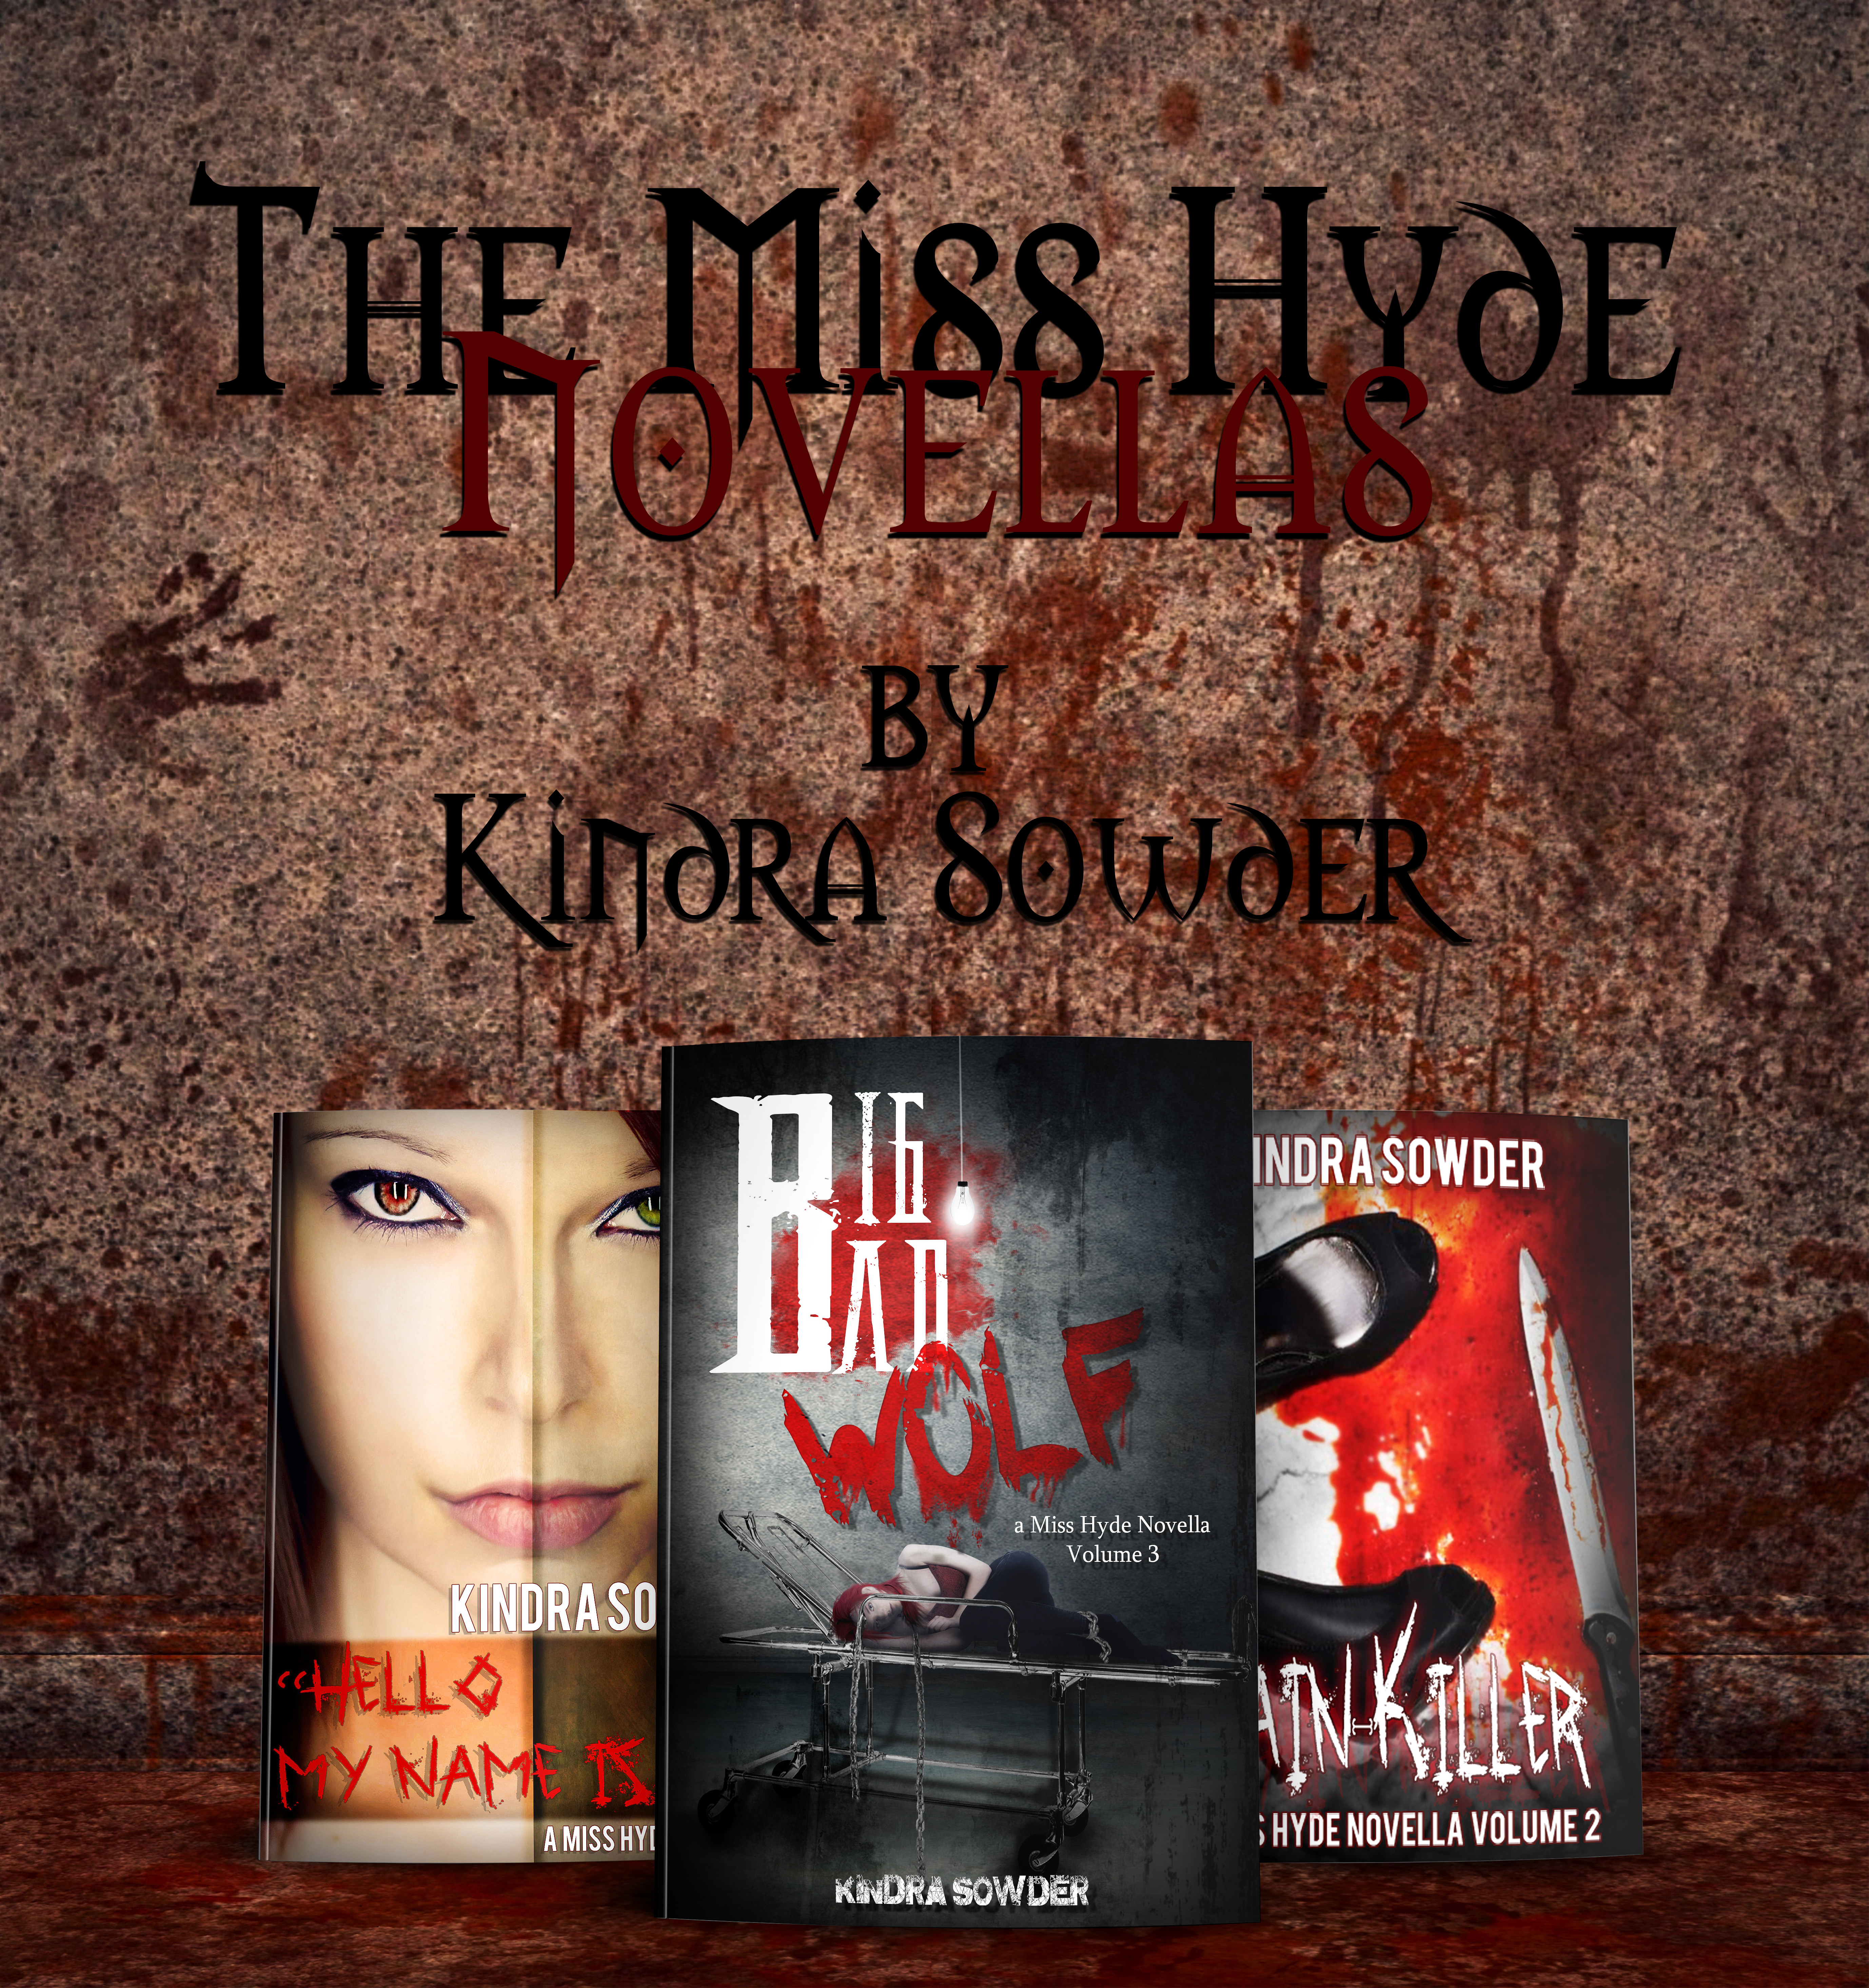 miss hyde novellas